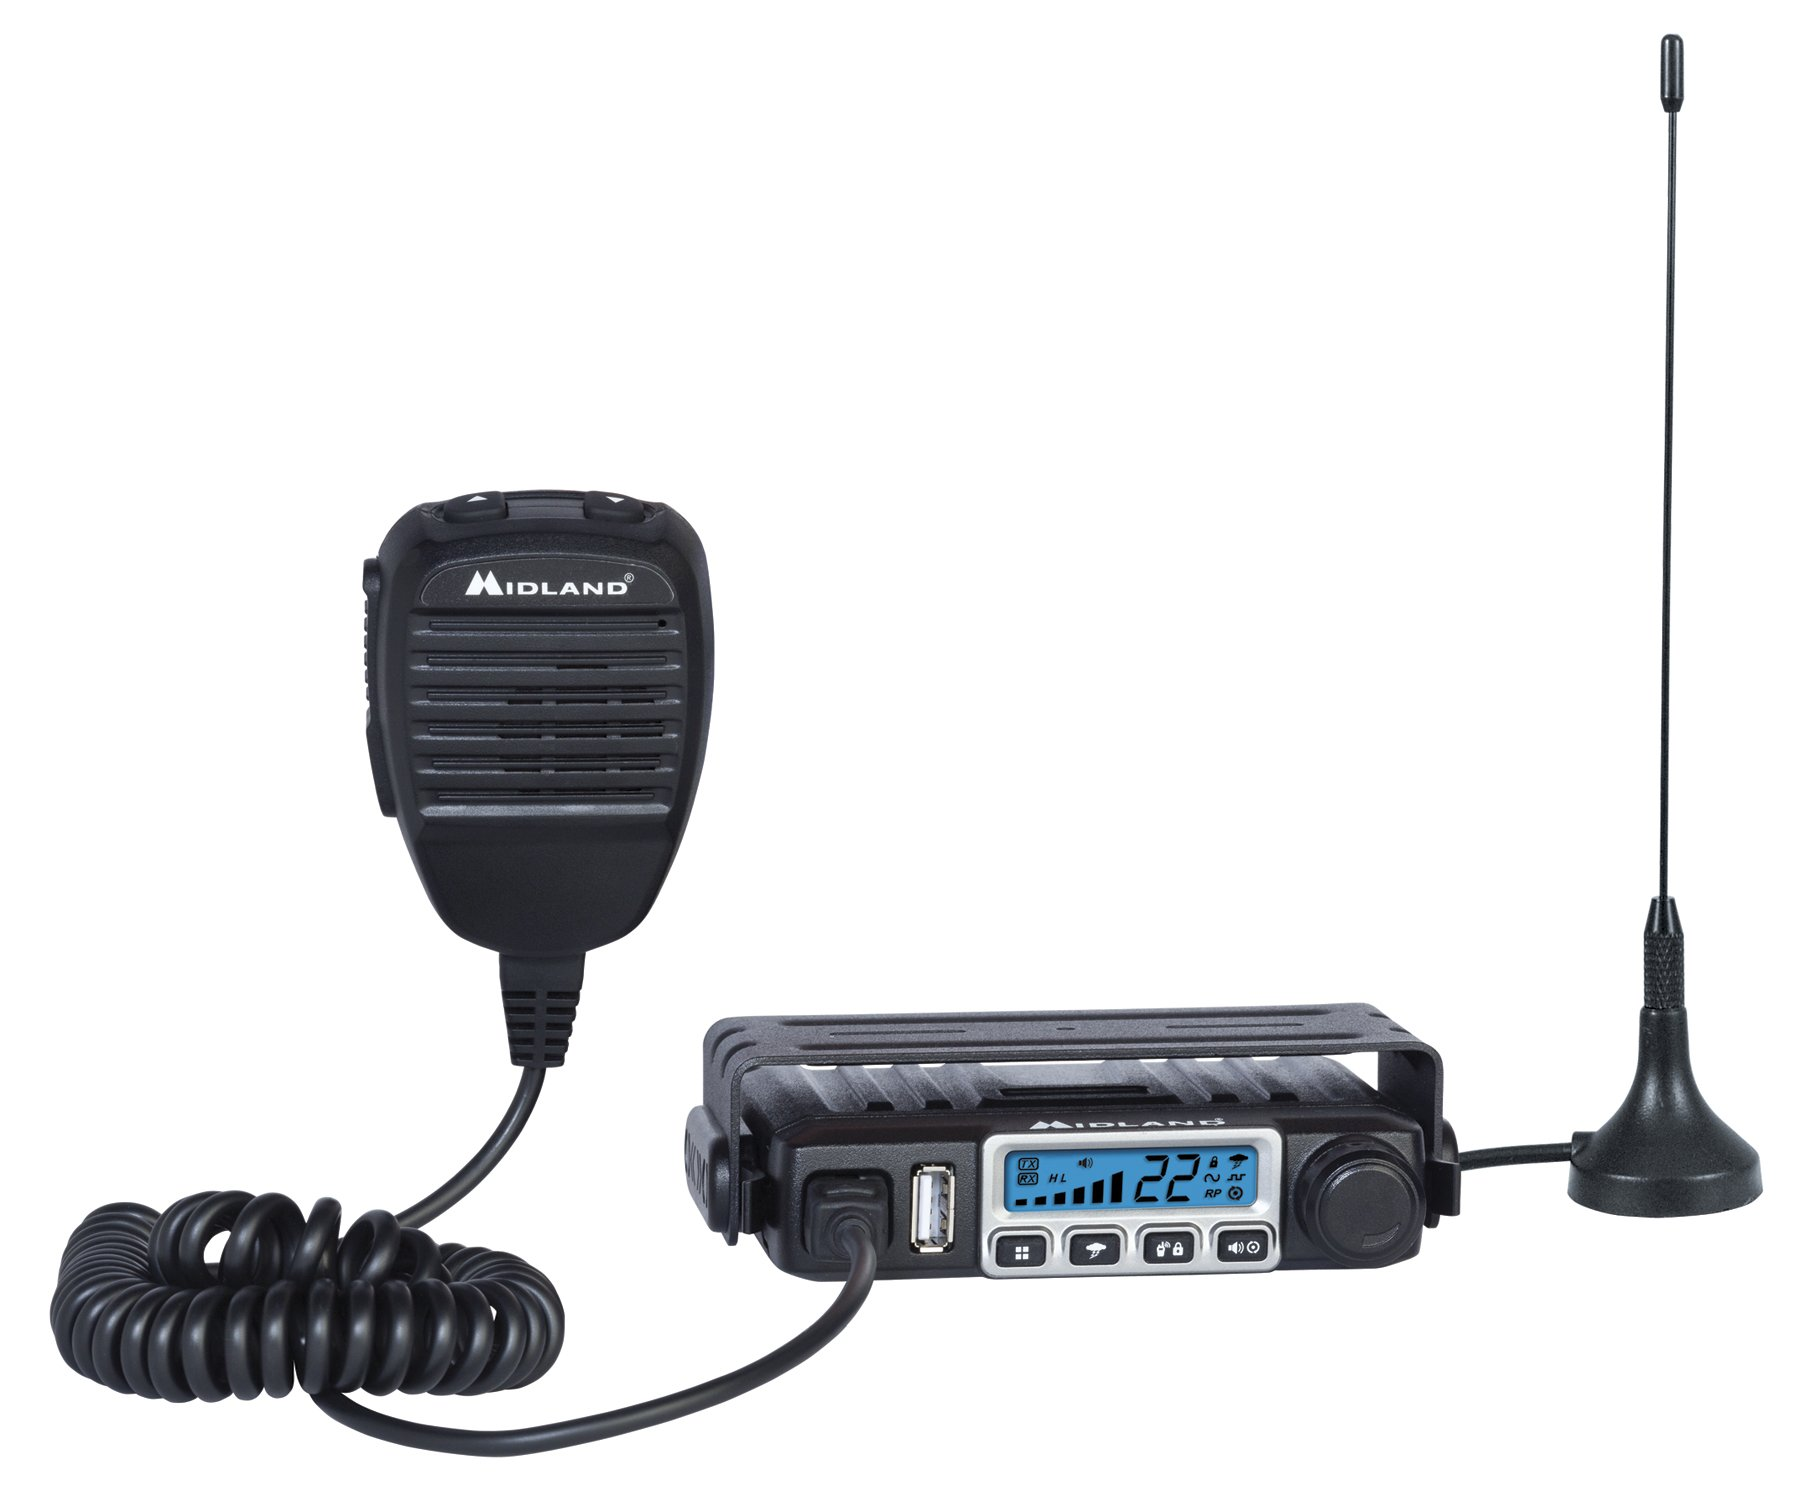 Midland Consumer Radio MXT115 Micro Mobile 15W Gmrs Radio with Weather, 8 Repeater Channels & Magnetic Mount Antenna by Midland (Image #1)